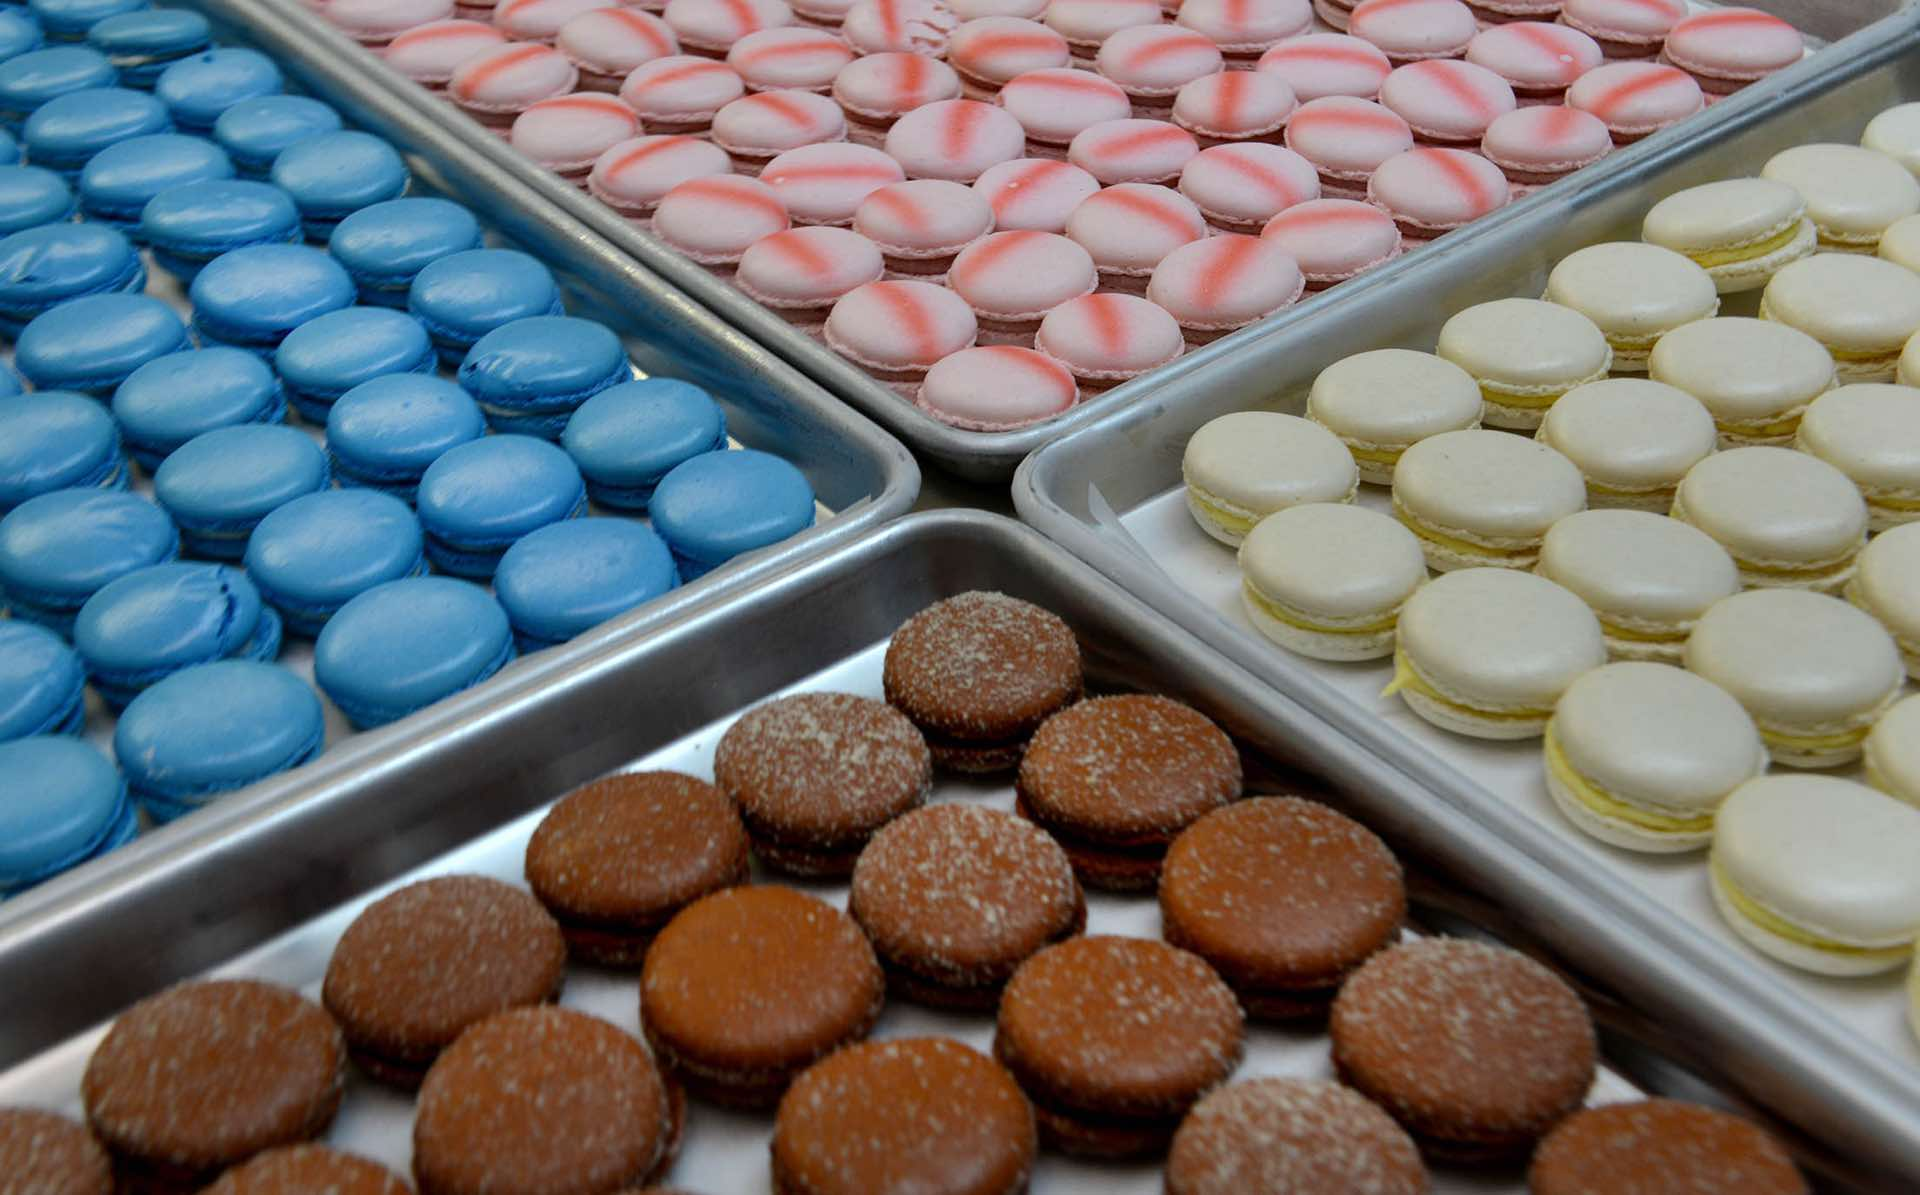 These are marzipan, nutella, strawberry and vanilla flavored macarons at Jean-Marc Chatellier's Bakery in Millvale. (Michael Henninger/Post-Gazette)